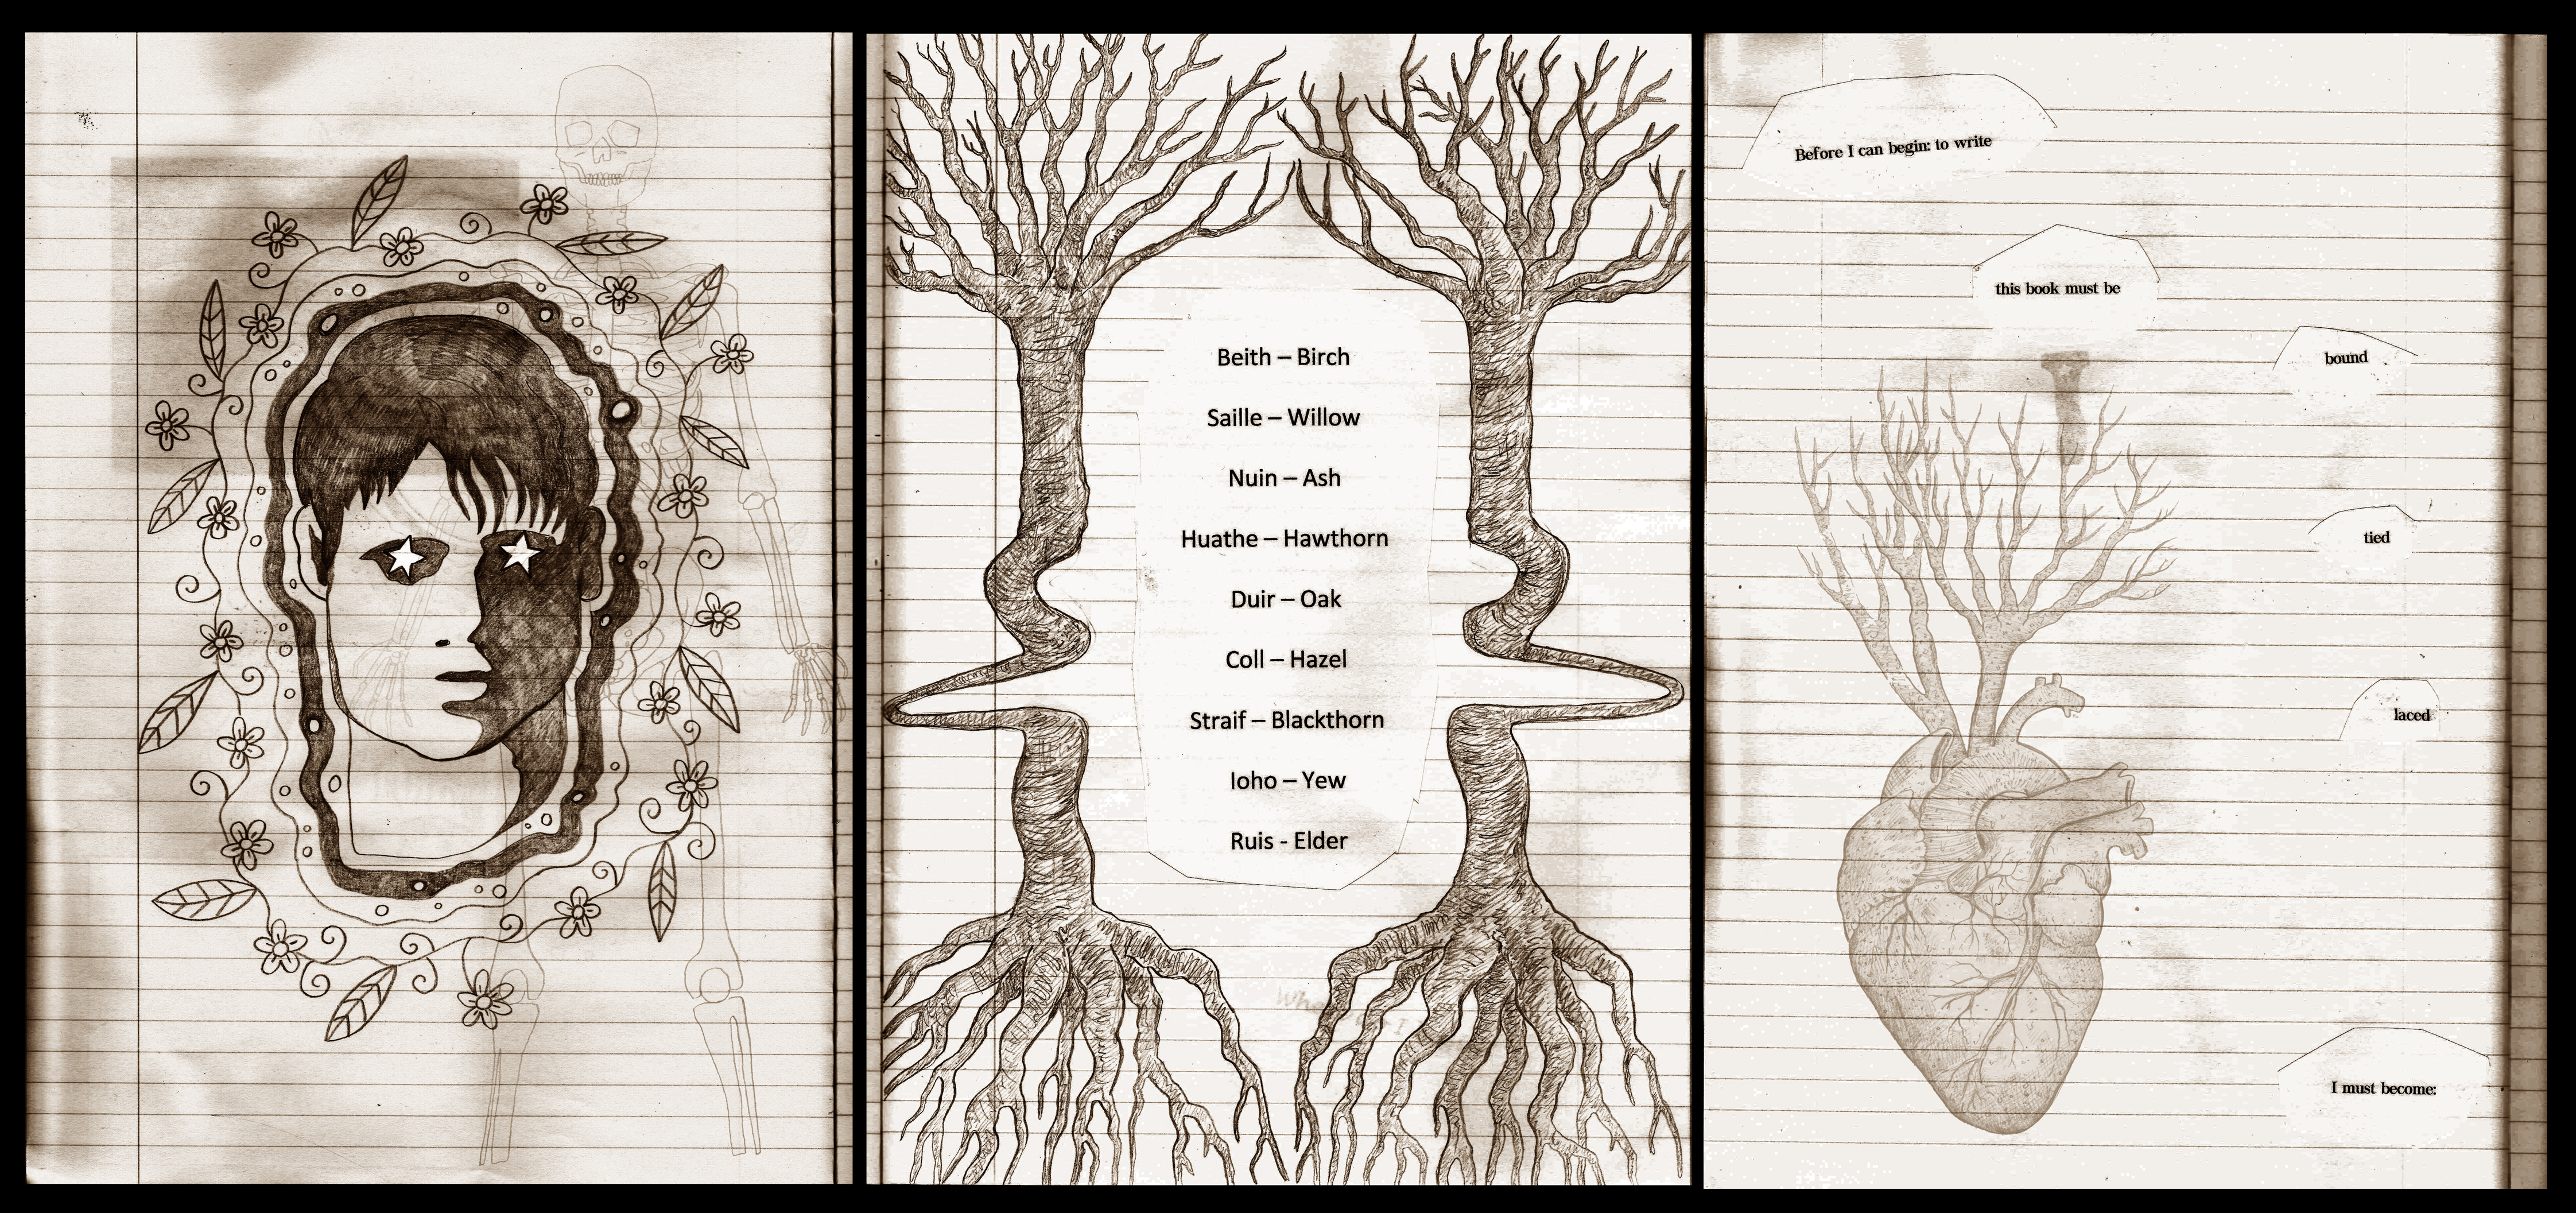 unfinished book images